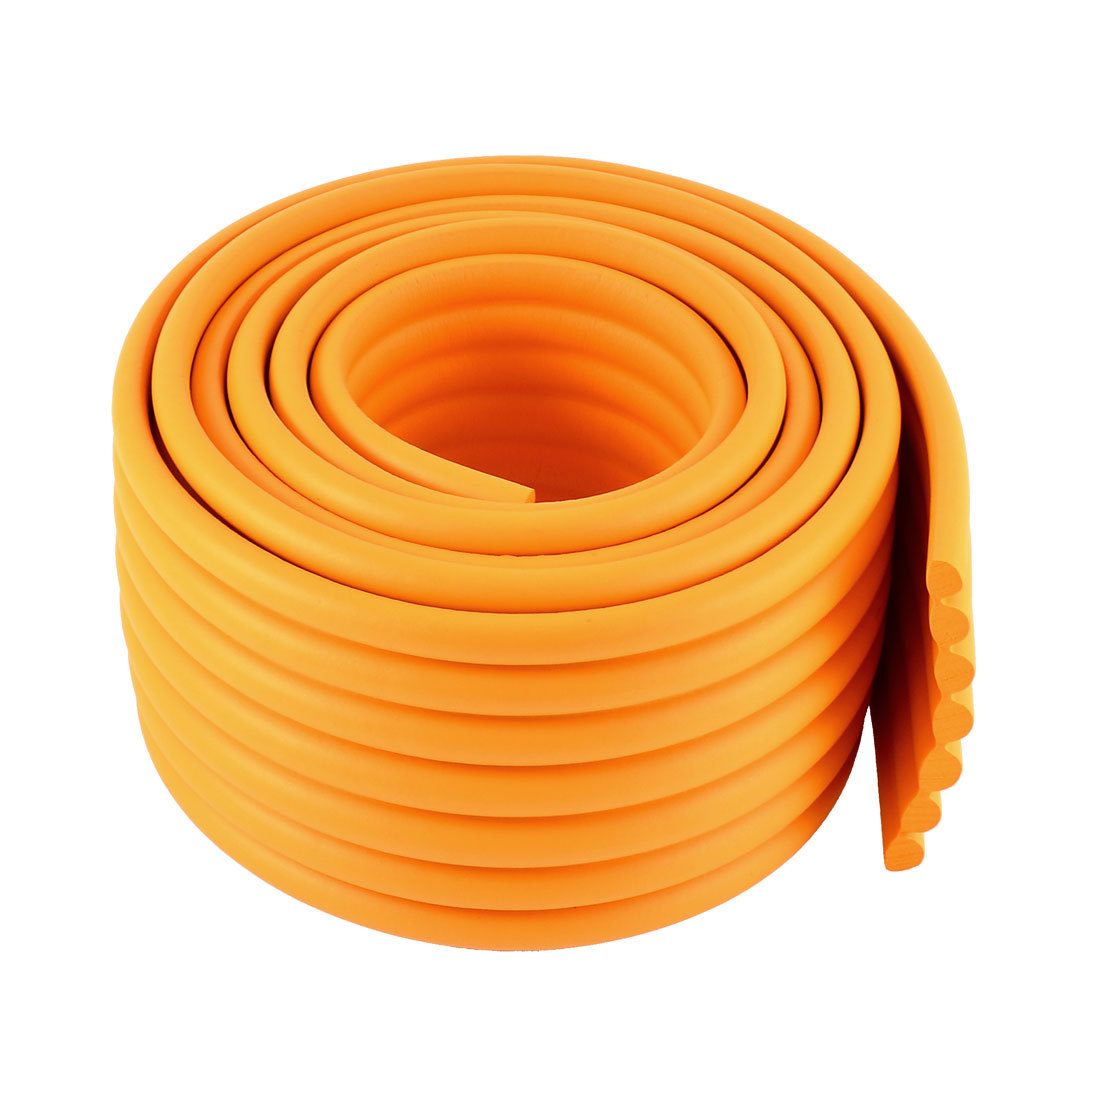 Table Desk Edge Corner Cushion Guard Protector Bumper 2M Long Orange